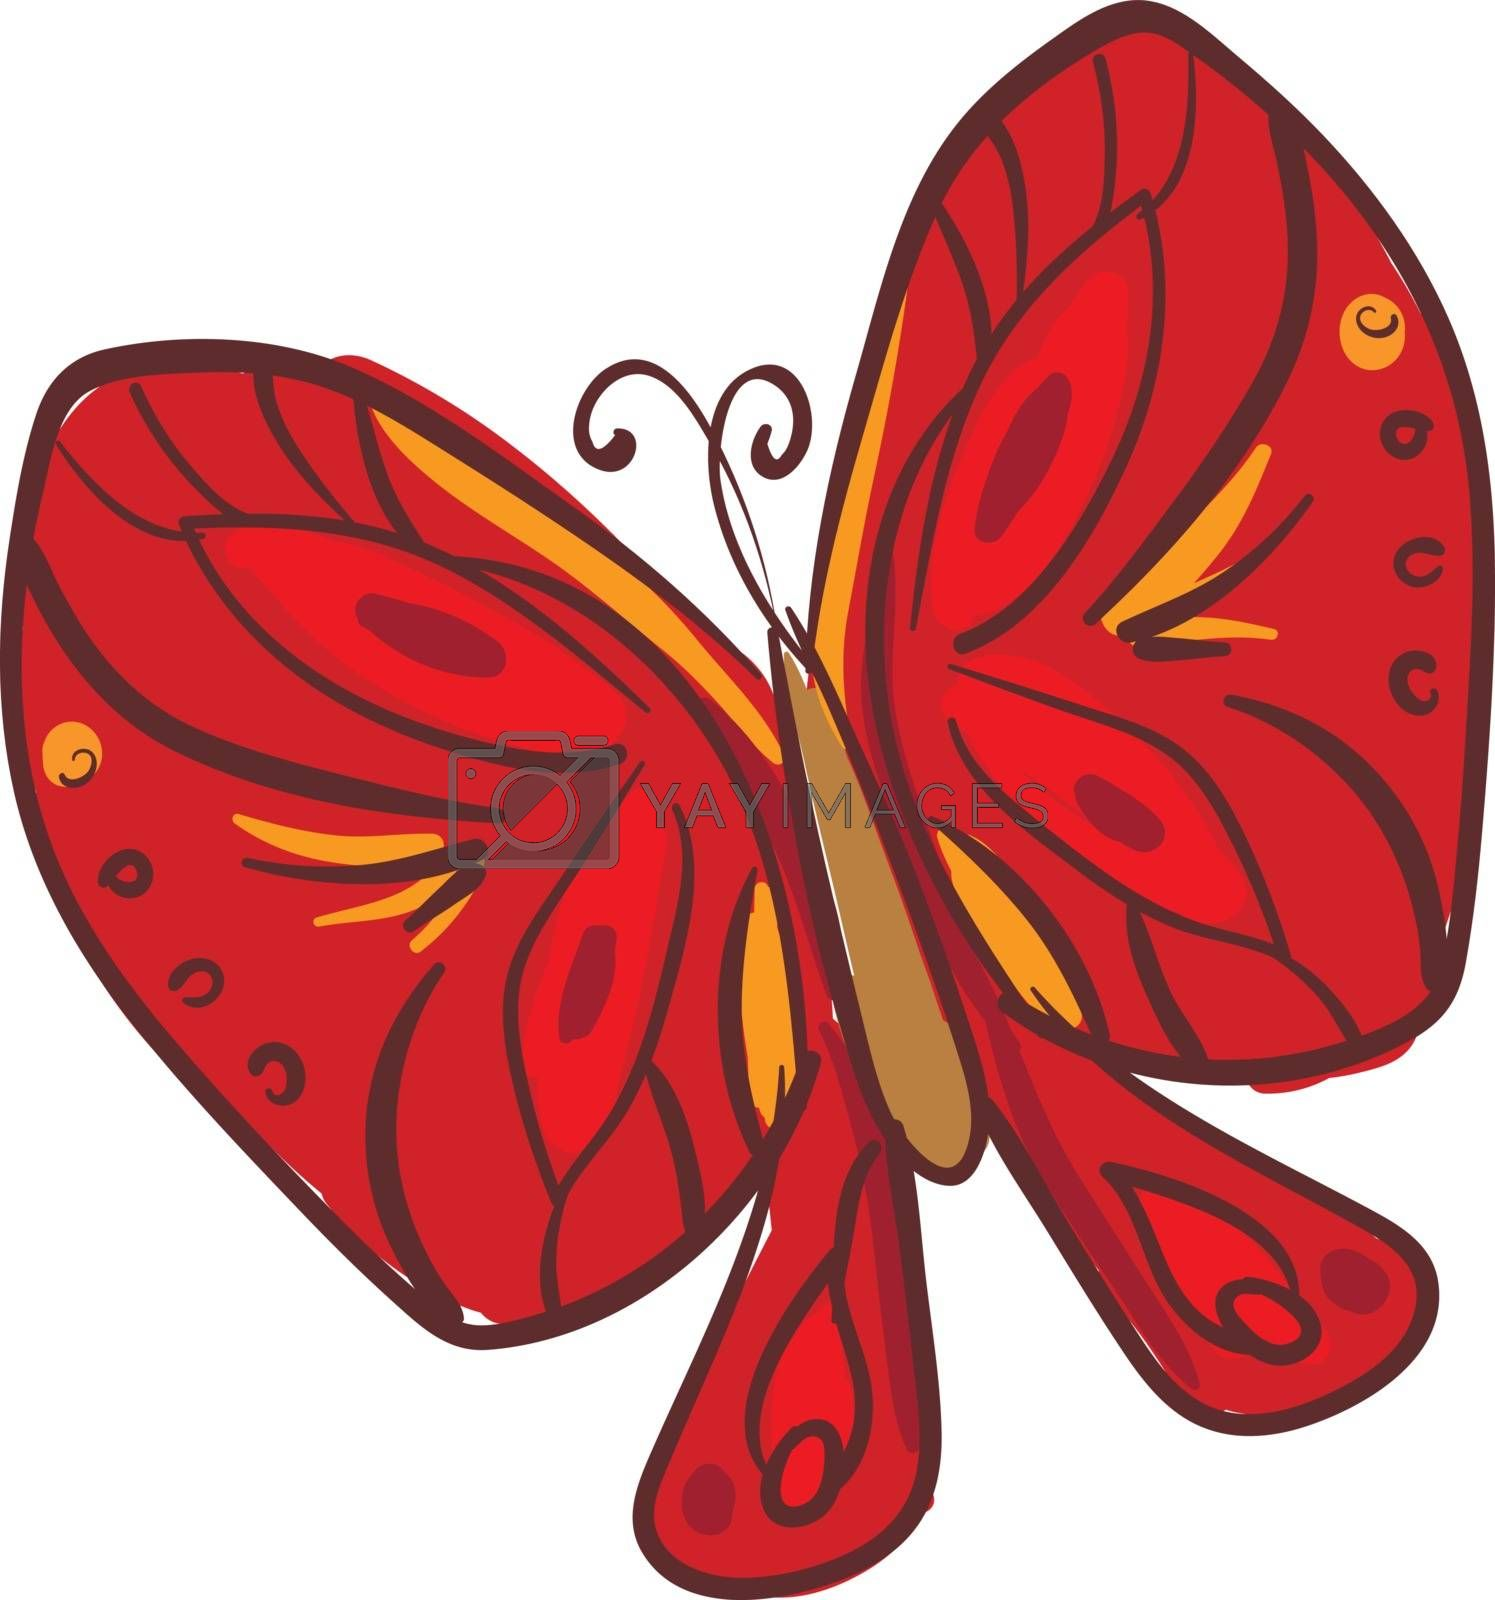 Royalty free image of Clipart of a red-colored butterfly vector or color illustration by Morphart